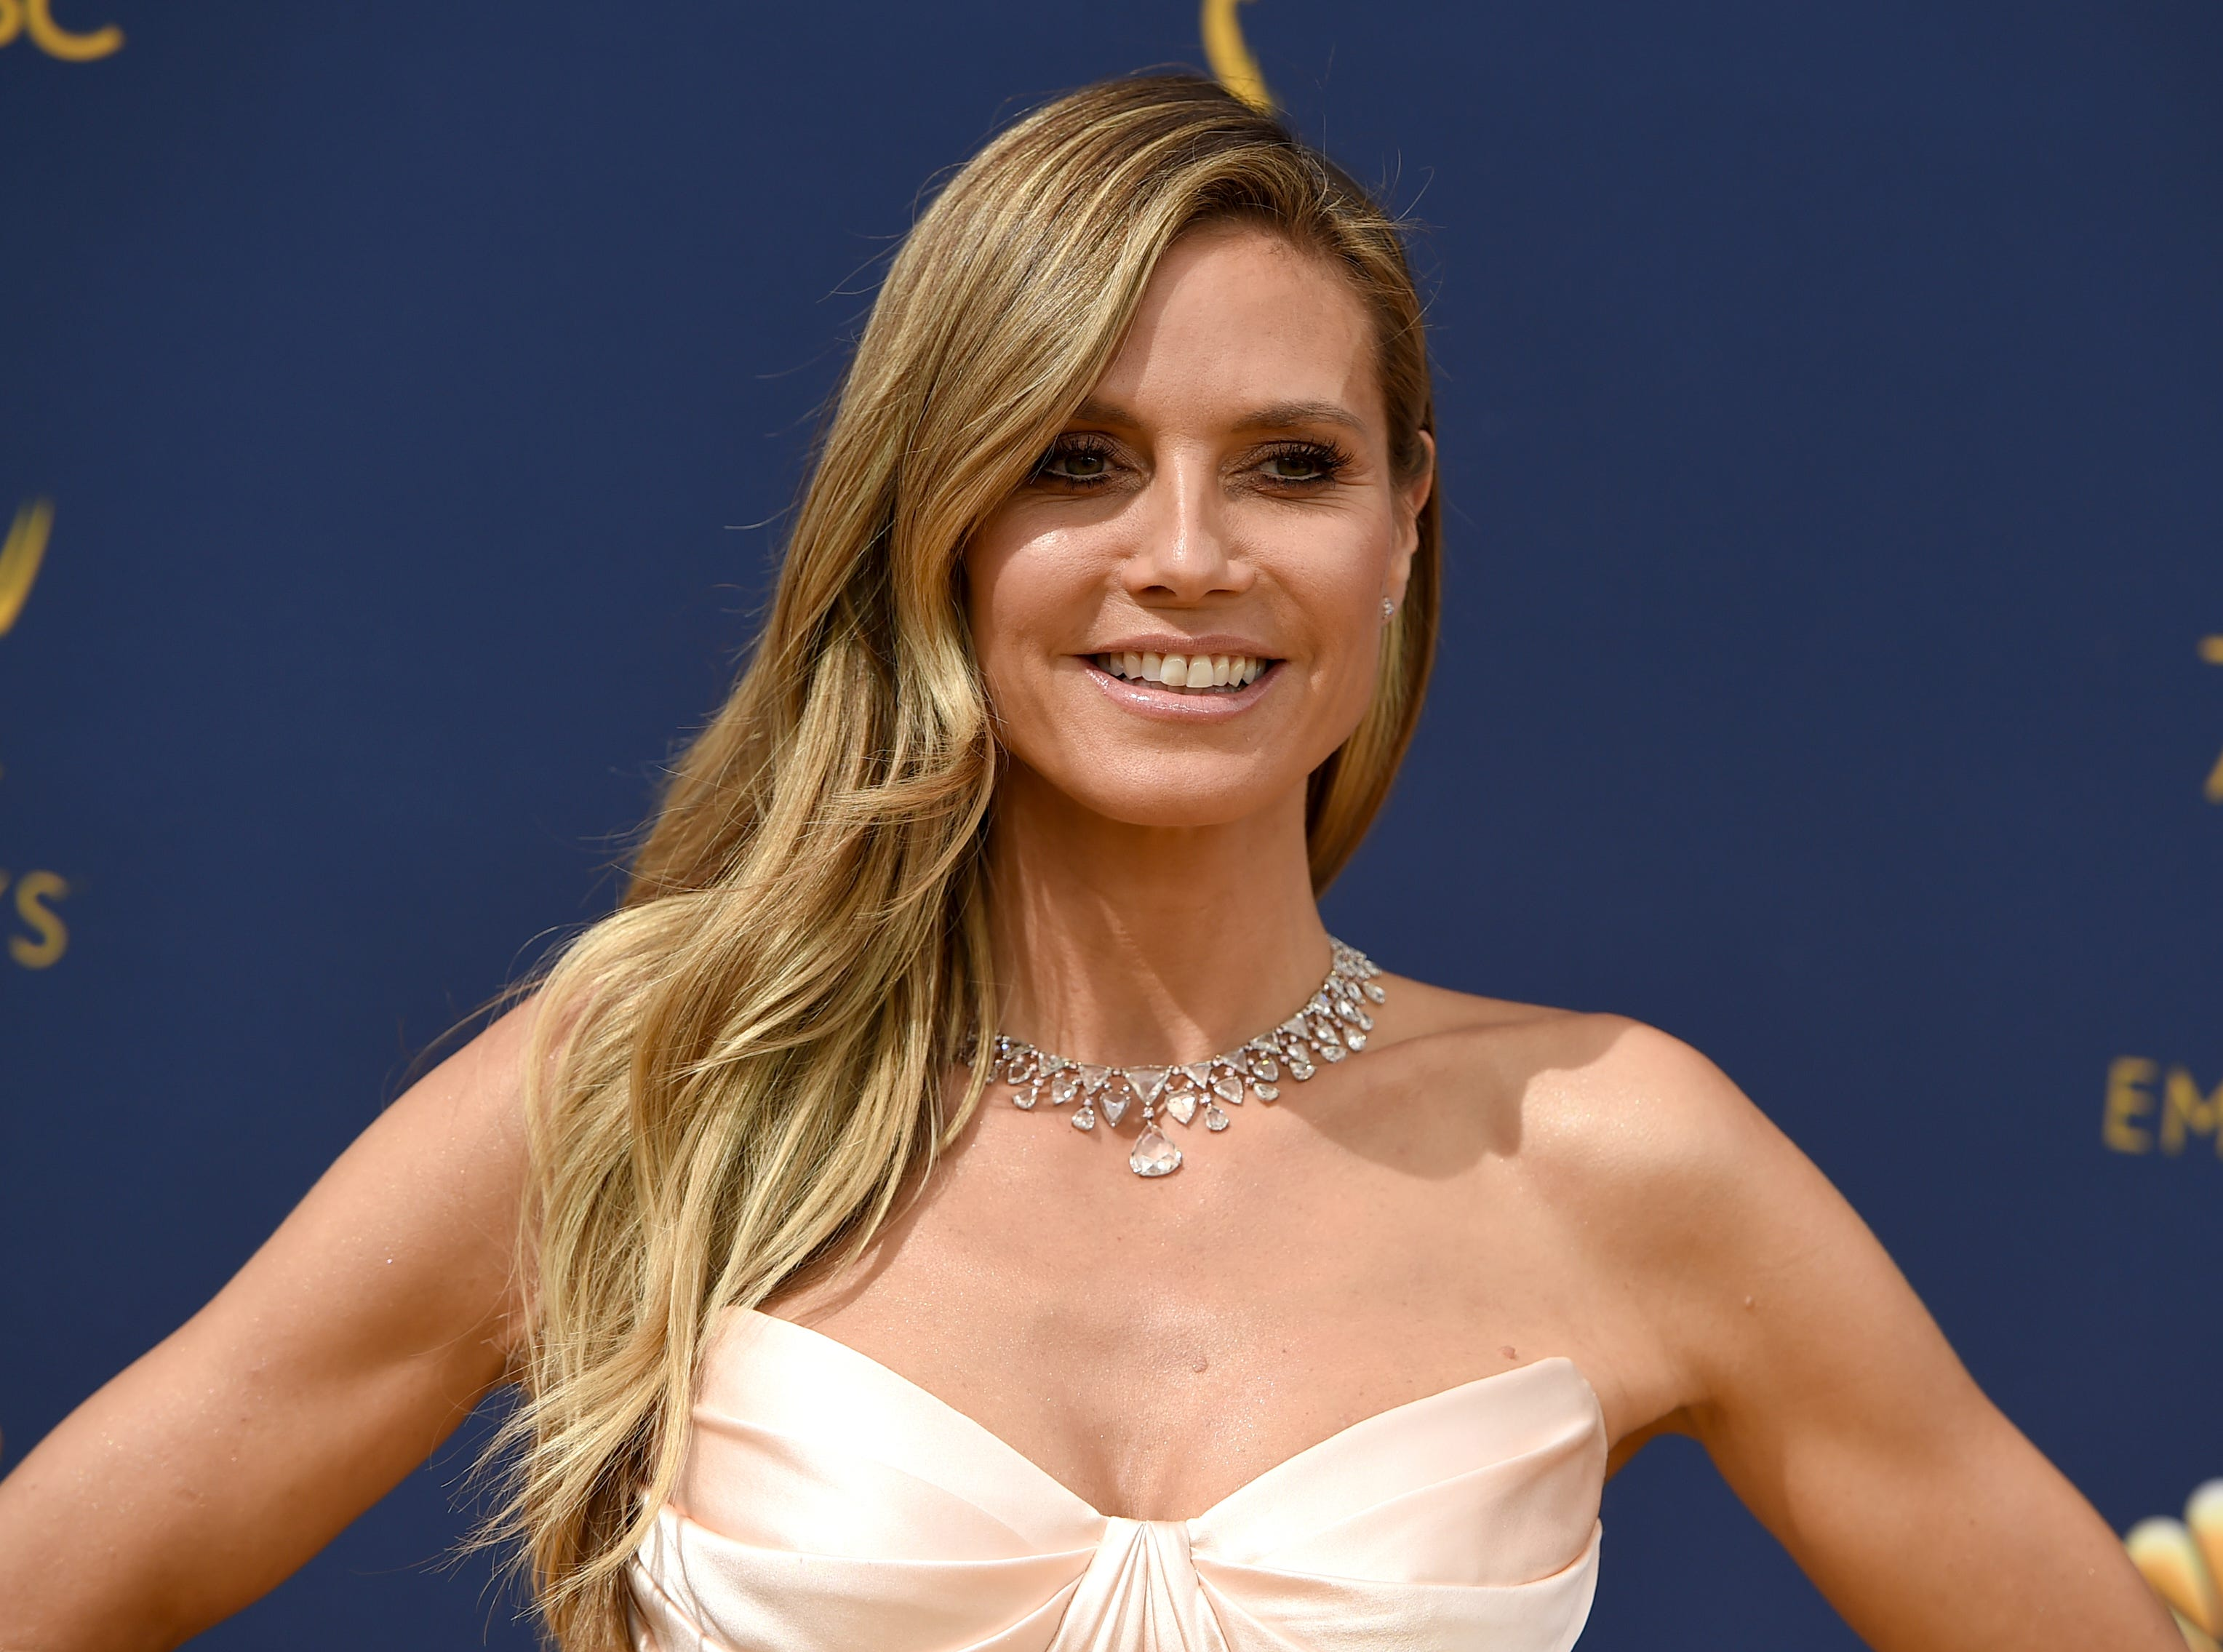 Heidi Klum arrives at the 70th Primetime Emmy Awards on Monday, Sept. 17, 2018, at the Microsoft Theater in Los Angeles.